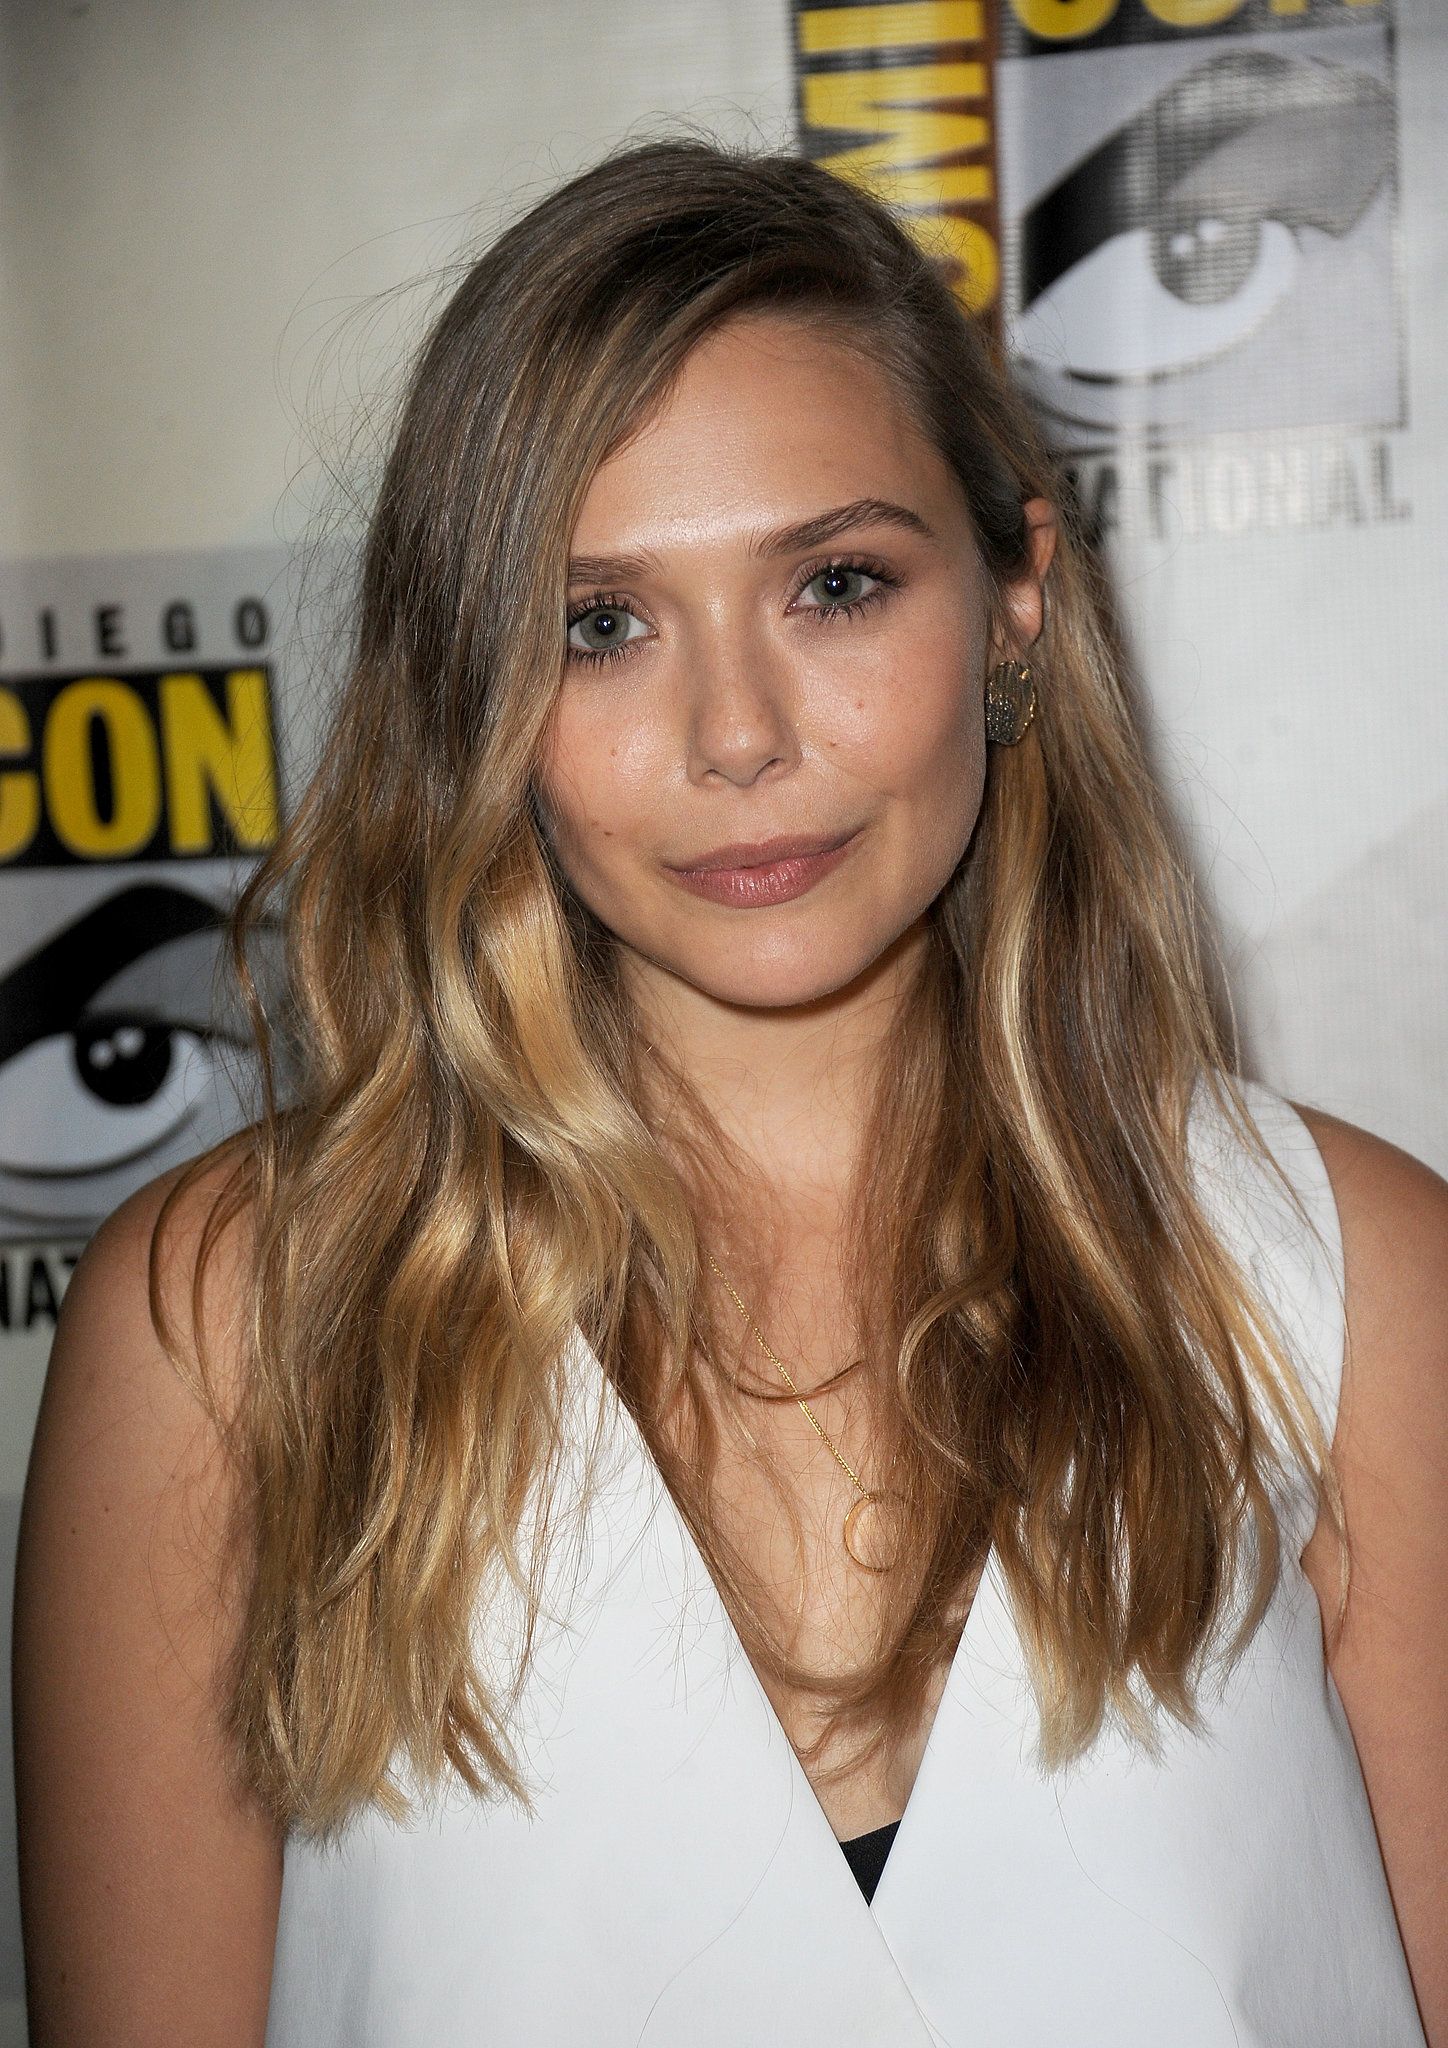 Elizabeth Olsen chose bold brows, nude lips, and cool-girl bedhead waves.